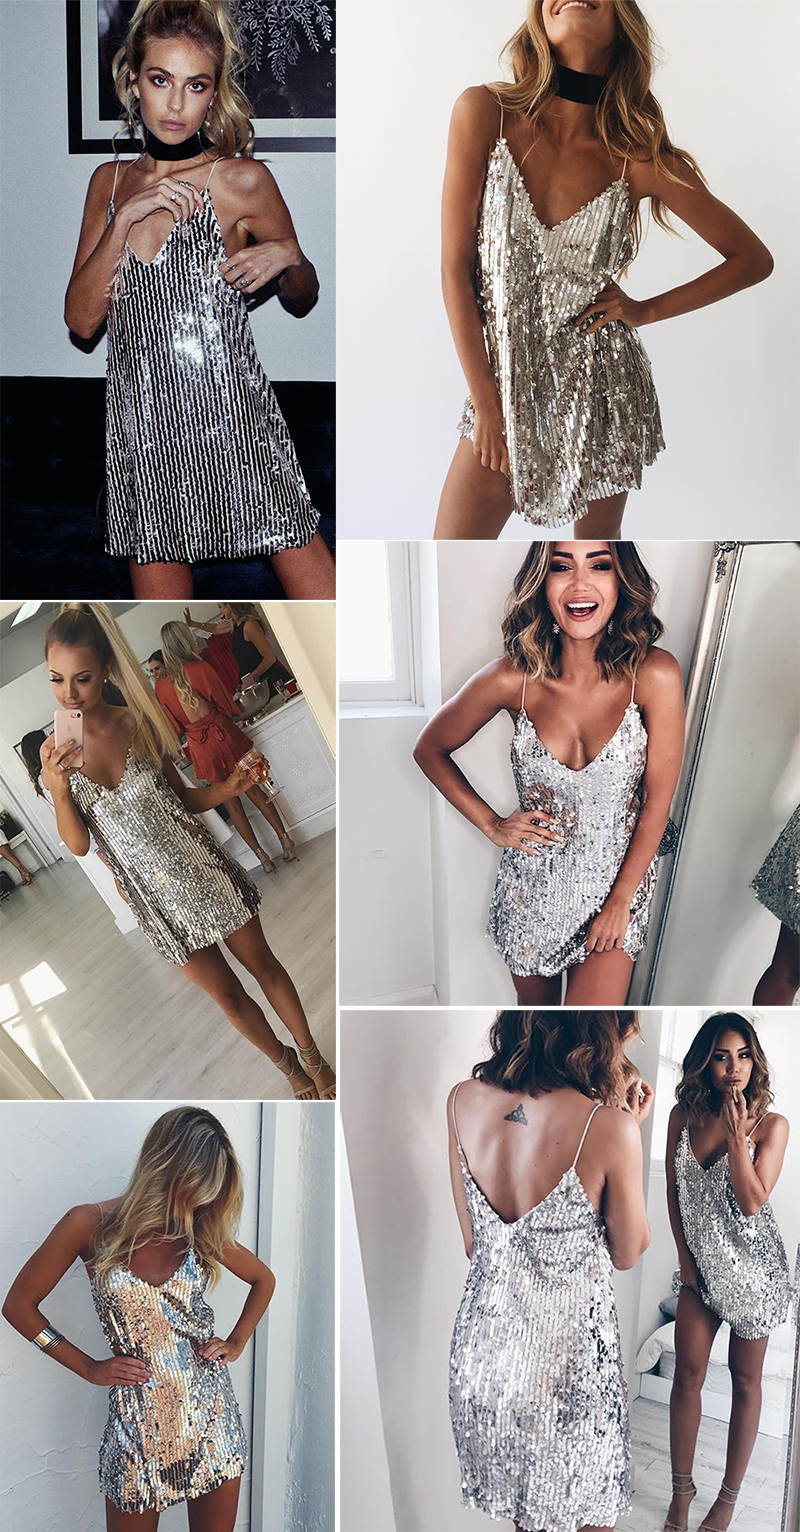 HTB1ZEwZqMoQMeJjy0Fnq6z8gFXaD - Deep V Neck Autumn Silver Sequined Backless Sexy Dress Women Off Shoulder Mini Dress Christmas Party Club Strap Dresses Vestidos